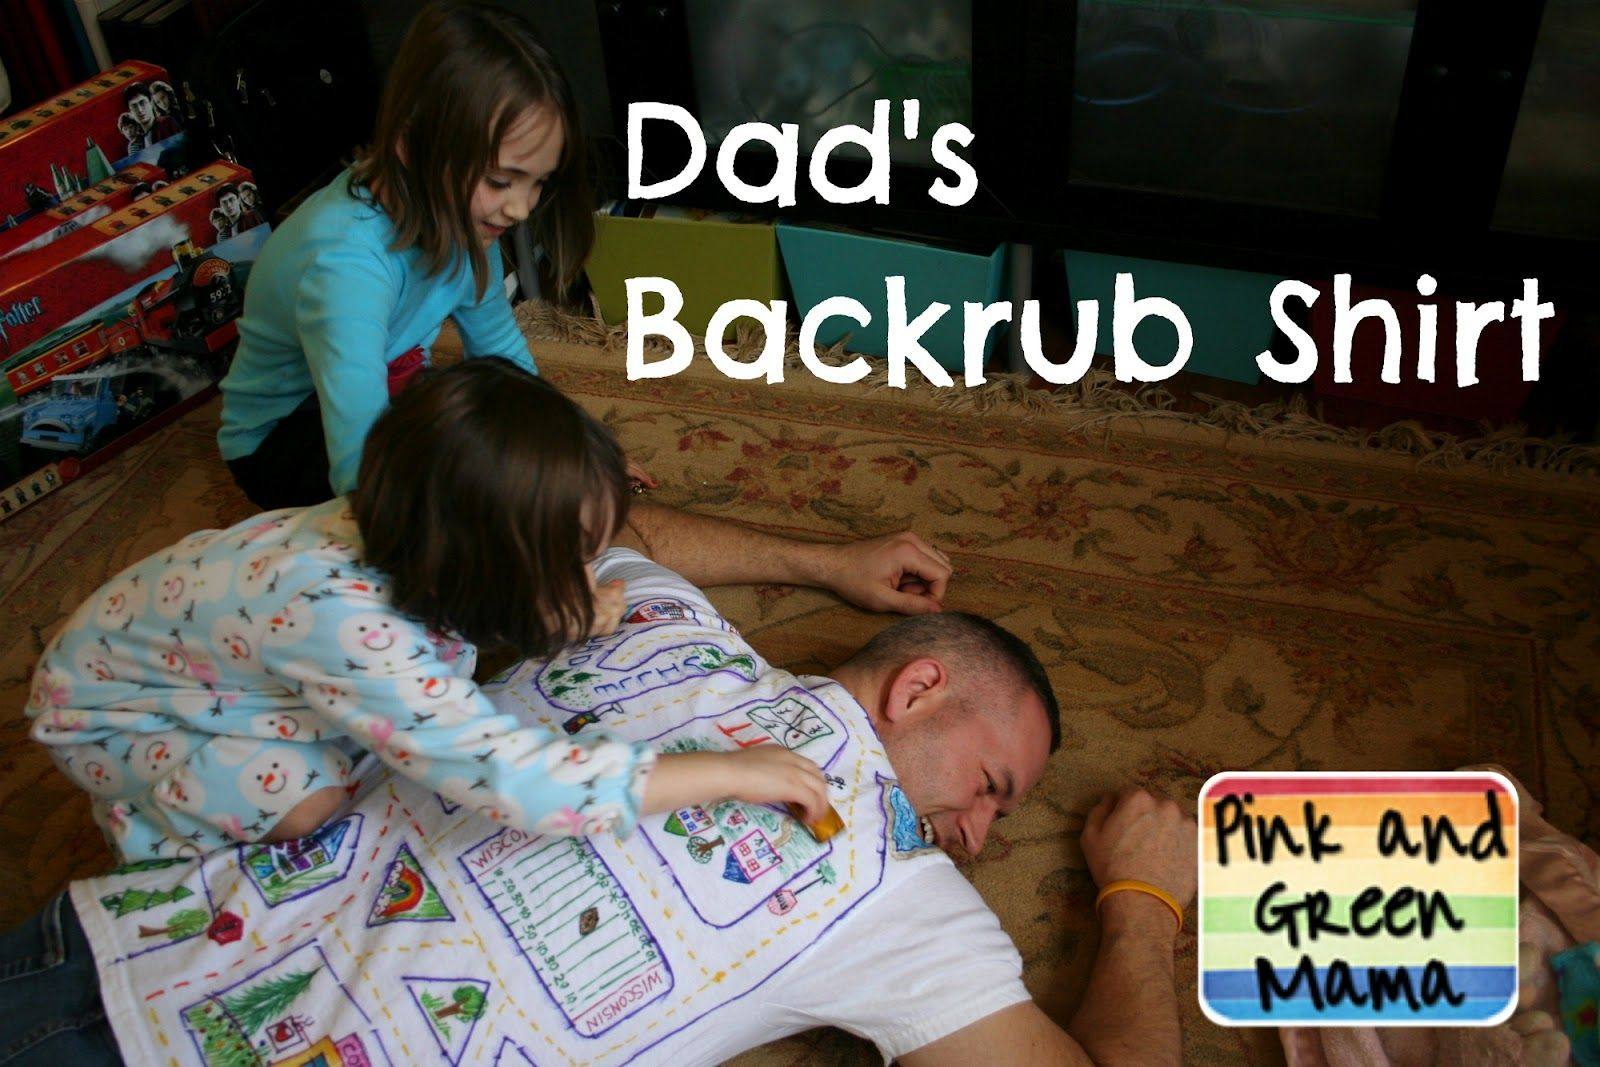 Pink and green mama homemade fathers day gift backrub t shirt pink and green mama homemade fathers day gift backrub t shirt verdict my son and i made them for daddy and both grandpas all three loved them solutioingenieria Images